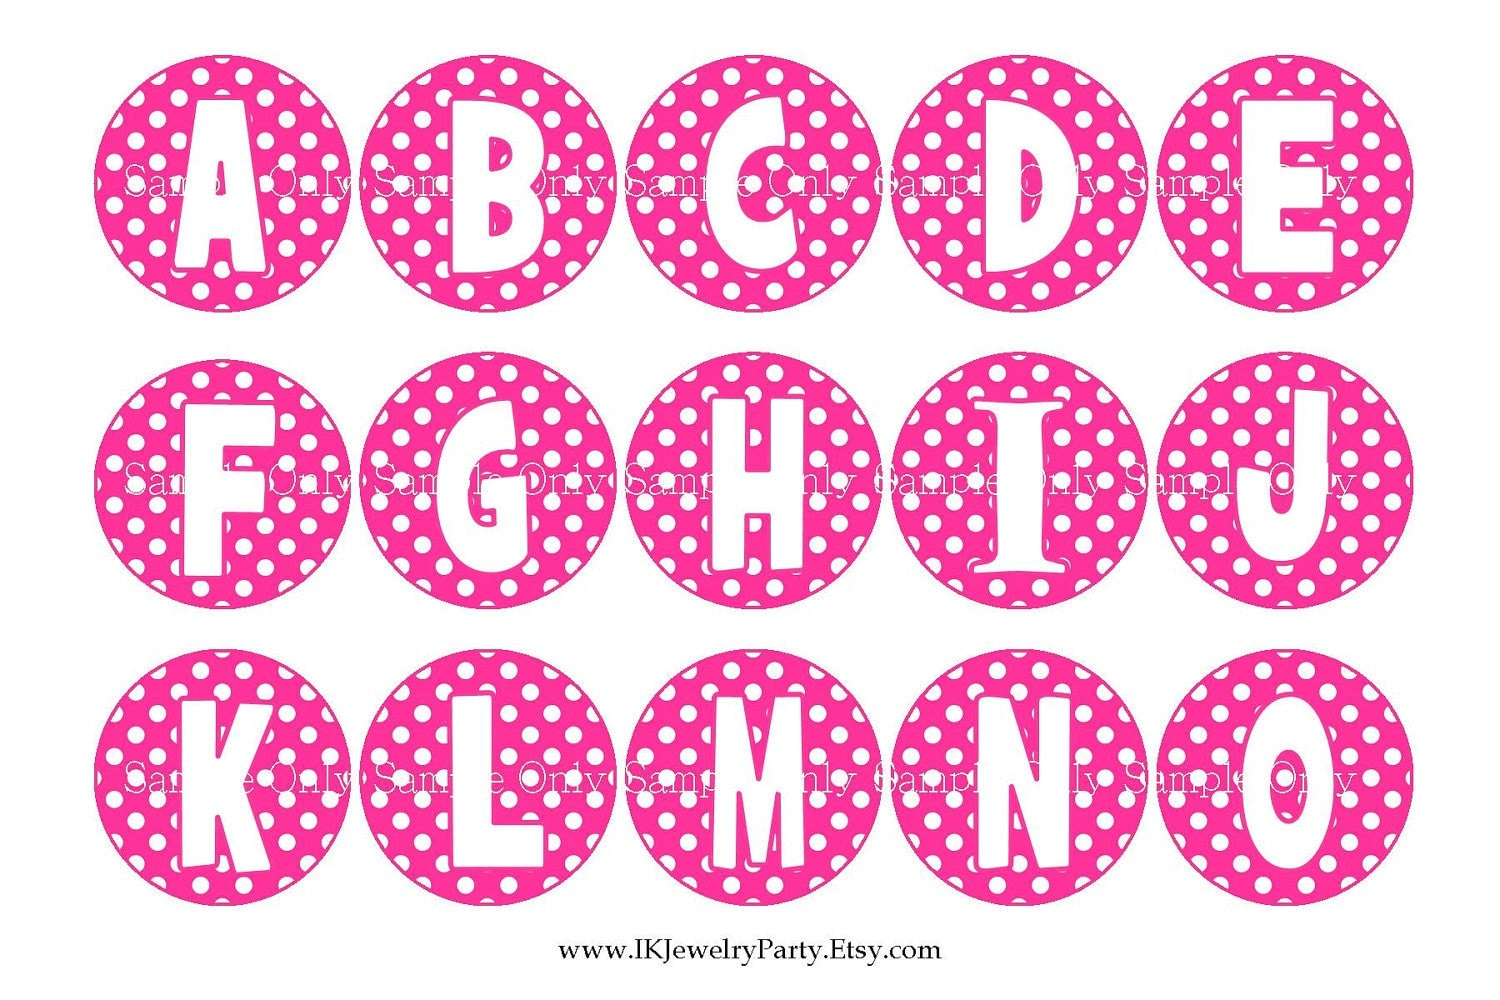 Pictures of The Letter B In Bubble Letters Pink - kidskunst.info